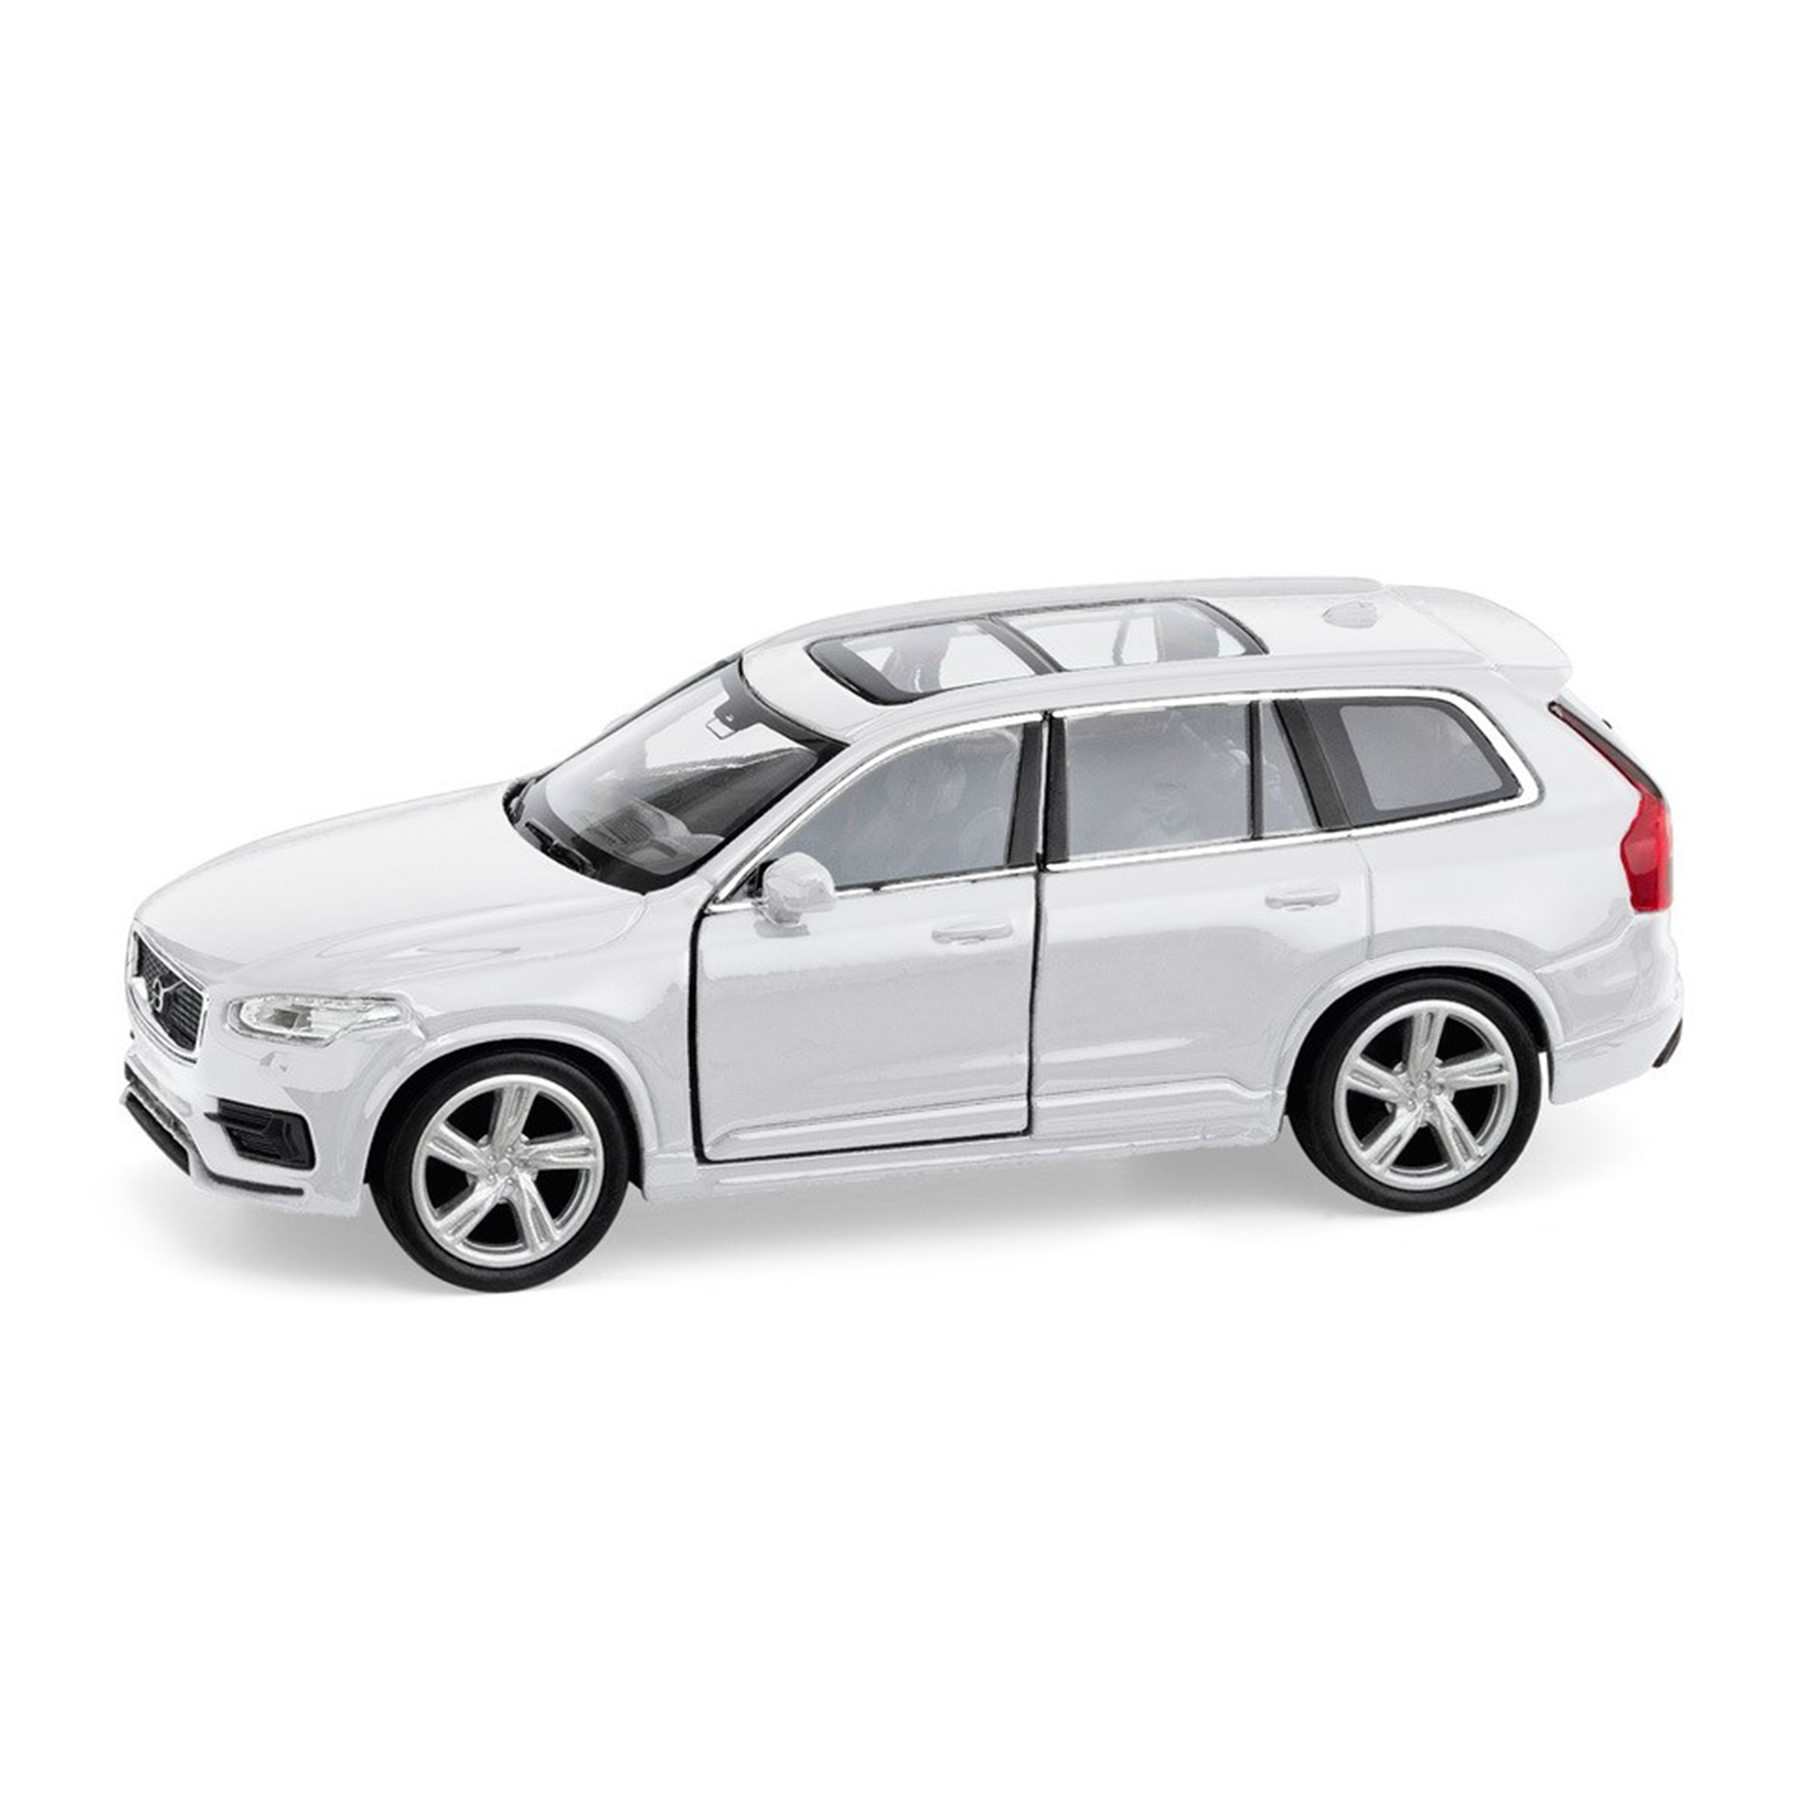 Volvo Car Lifestyle Collection Shop. XC90 Toy Car 1:38